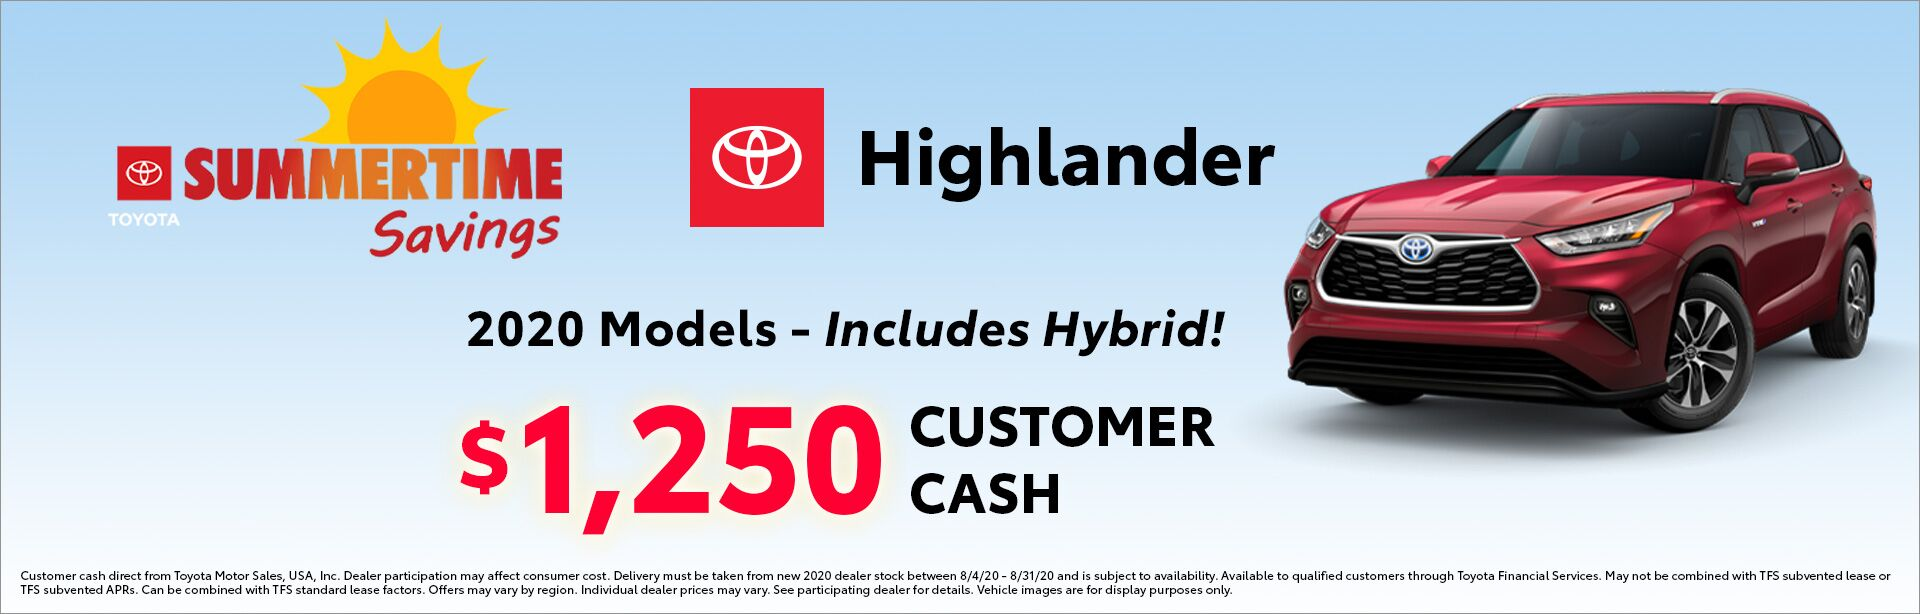 Highlander Customer Cash